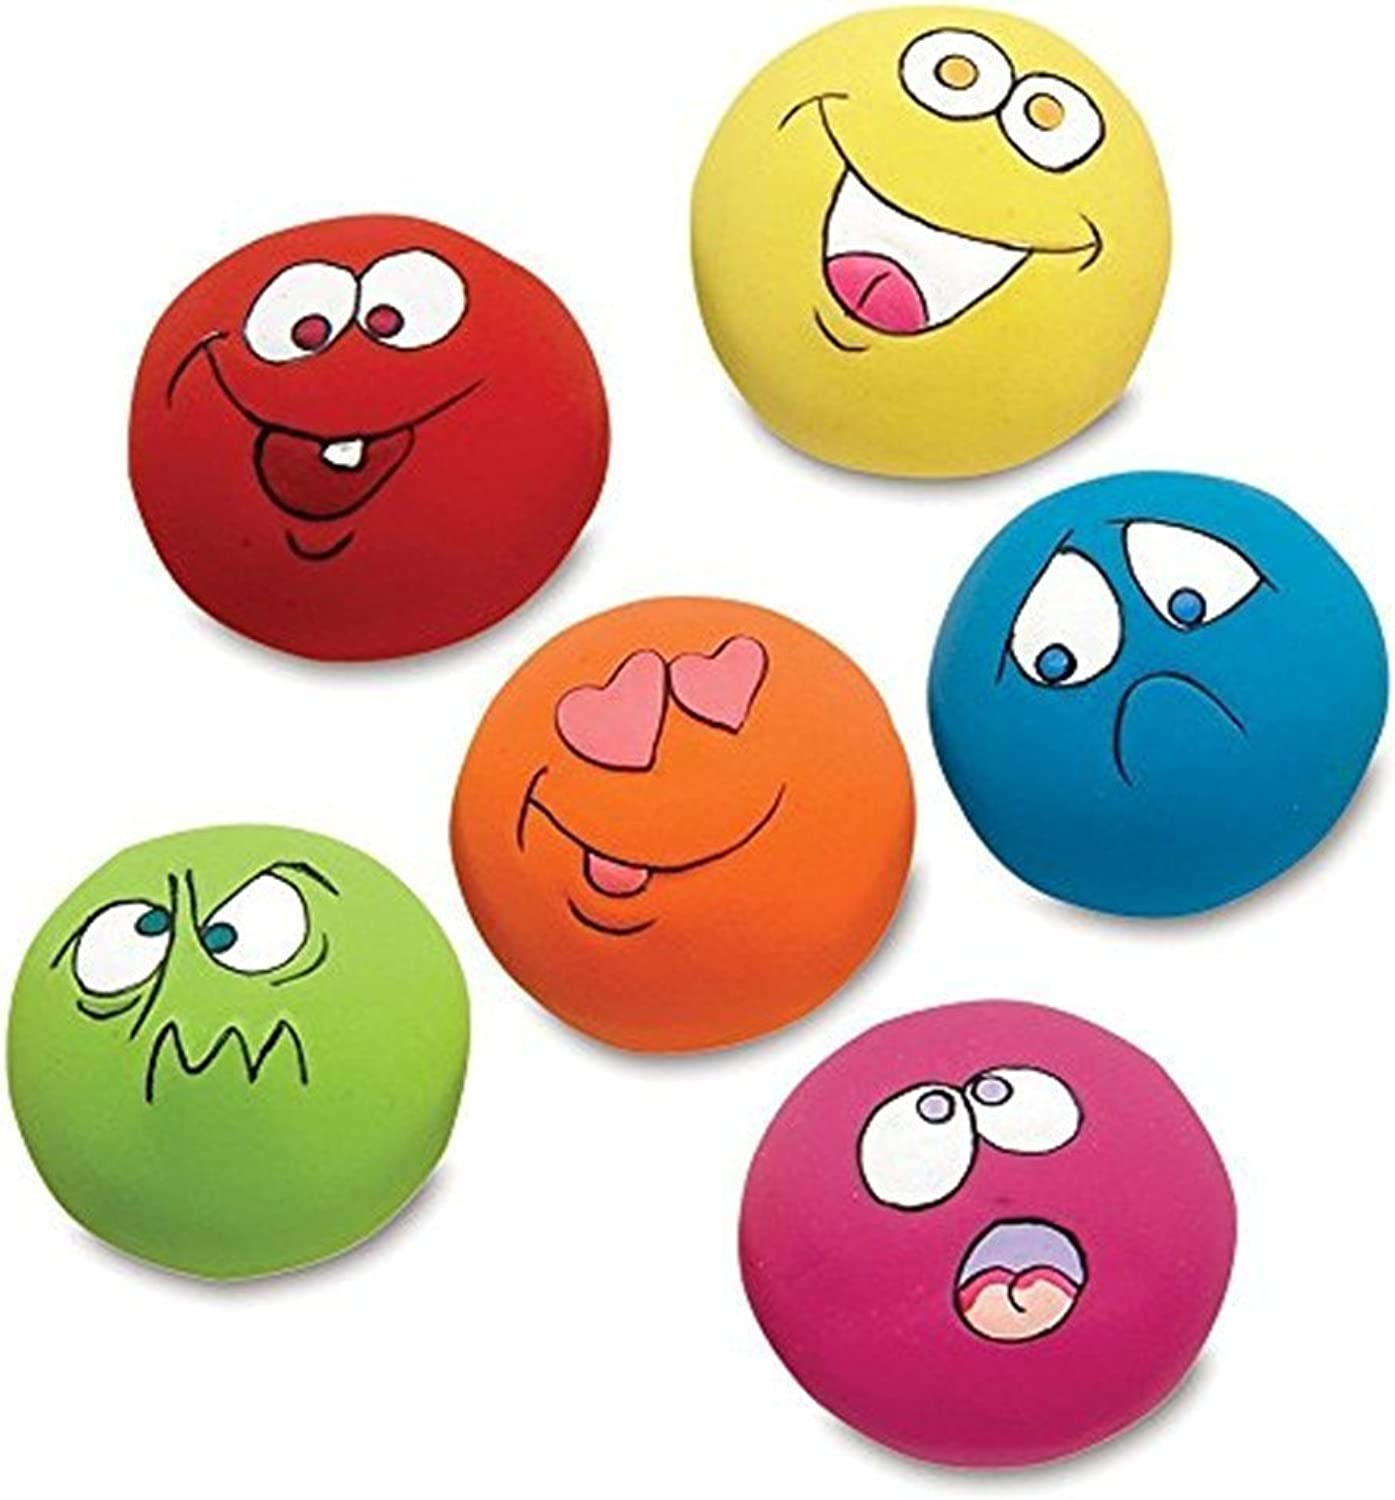 6PCS Squeaky Ball for Dogs Puppy Toy Funny Animal Sets Pet Interactive Play for Small Dog with Sound Squeaker Assorted Face